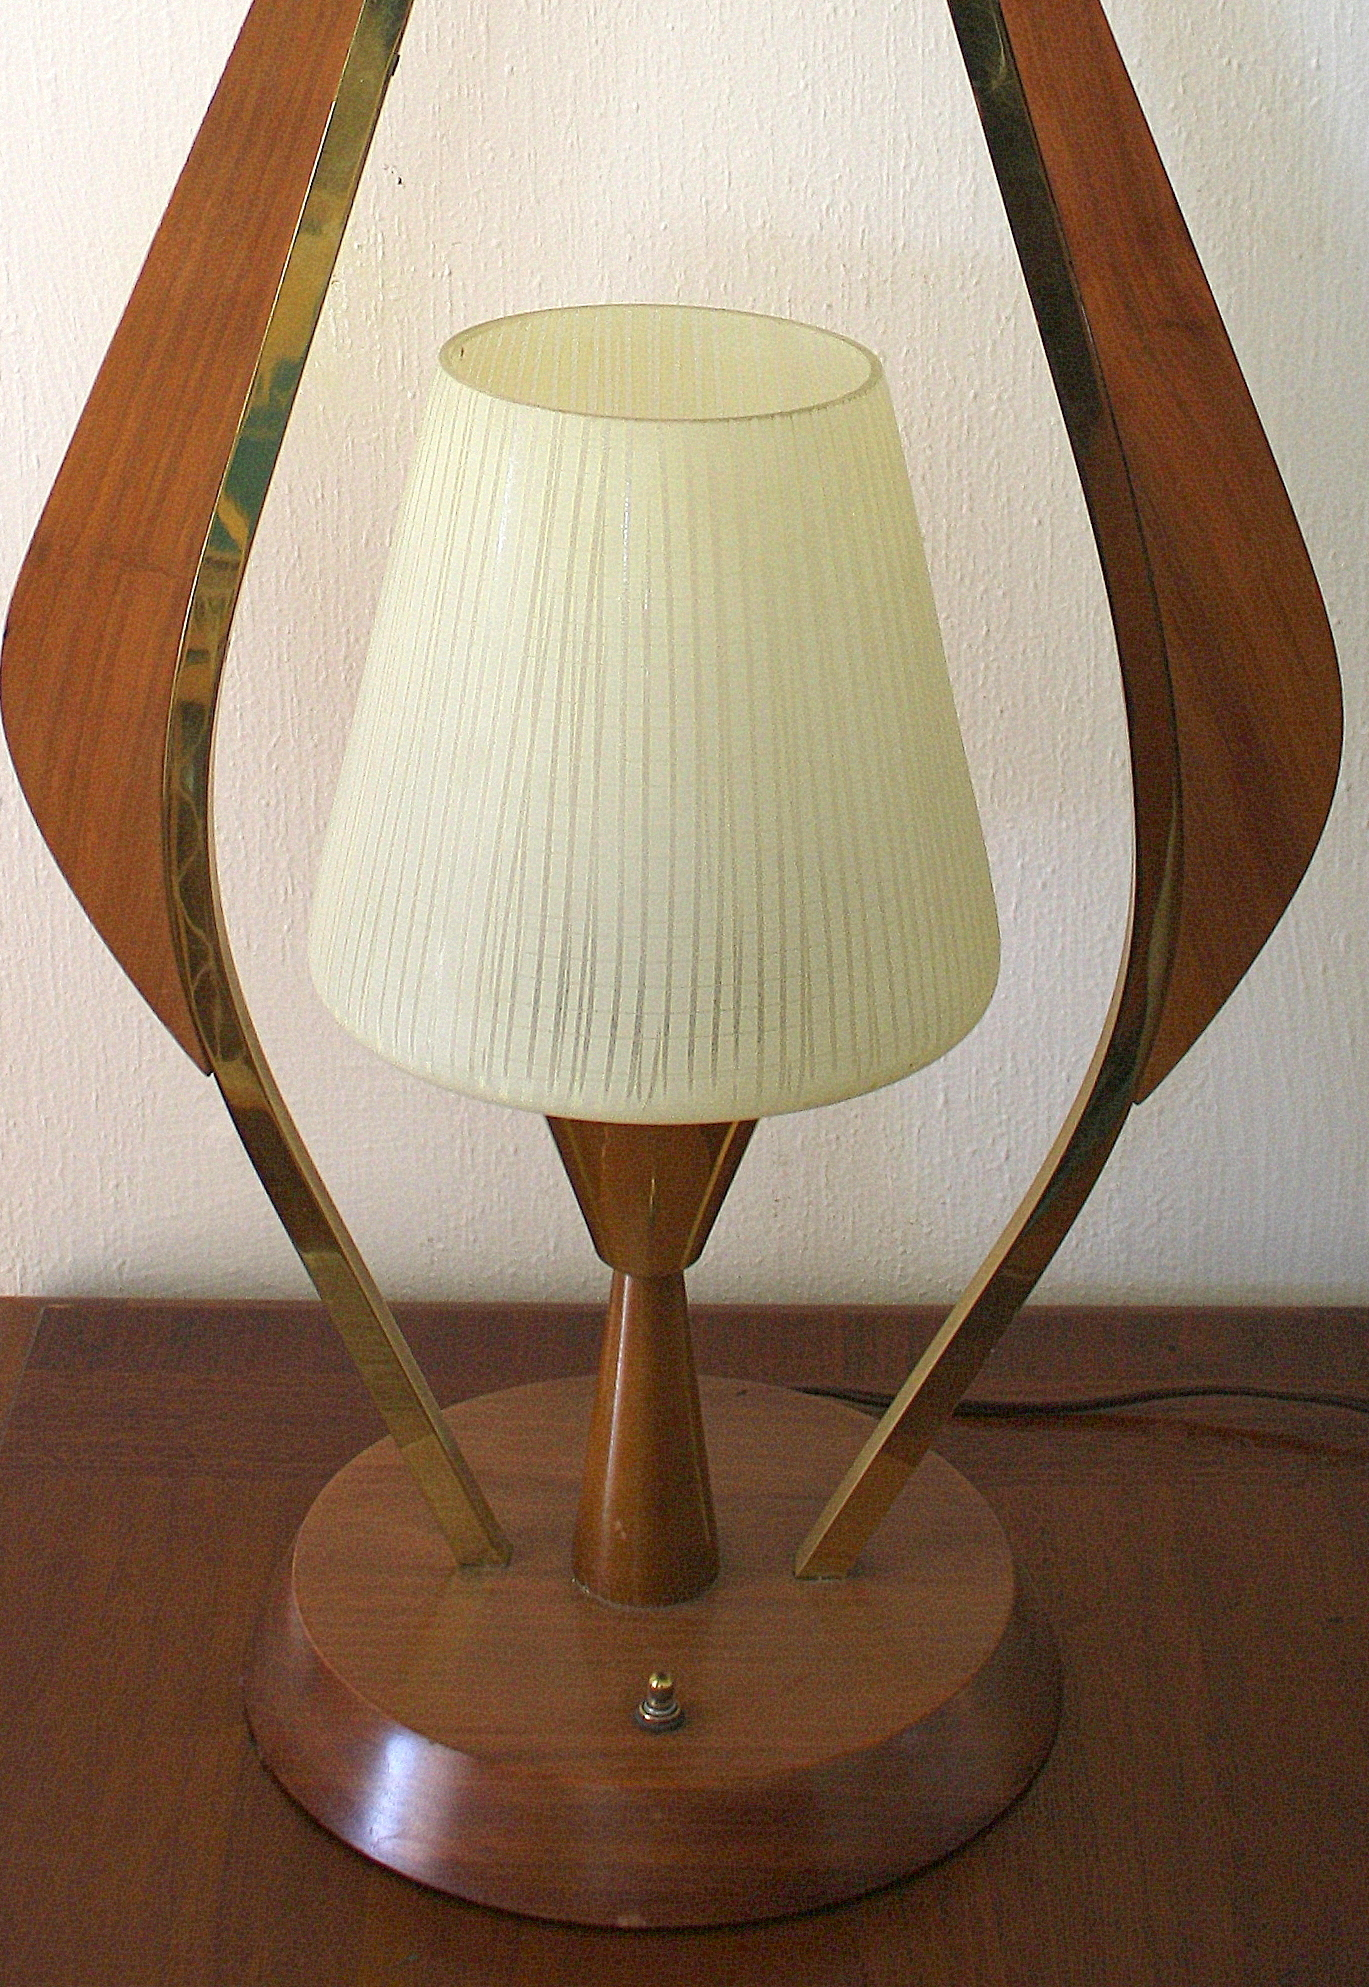 herman miller chairs vintage computer chair philippines mid century modern teak and brass table lamp | picked